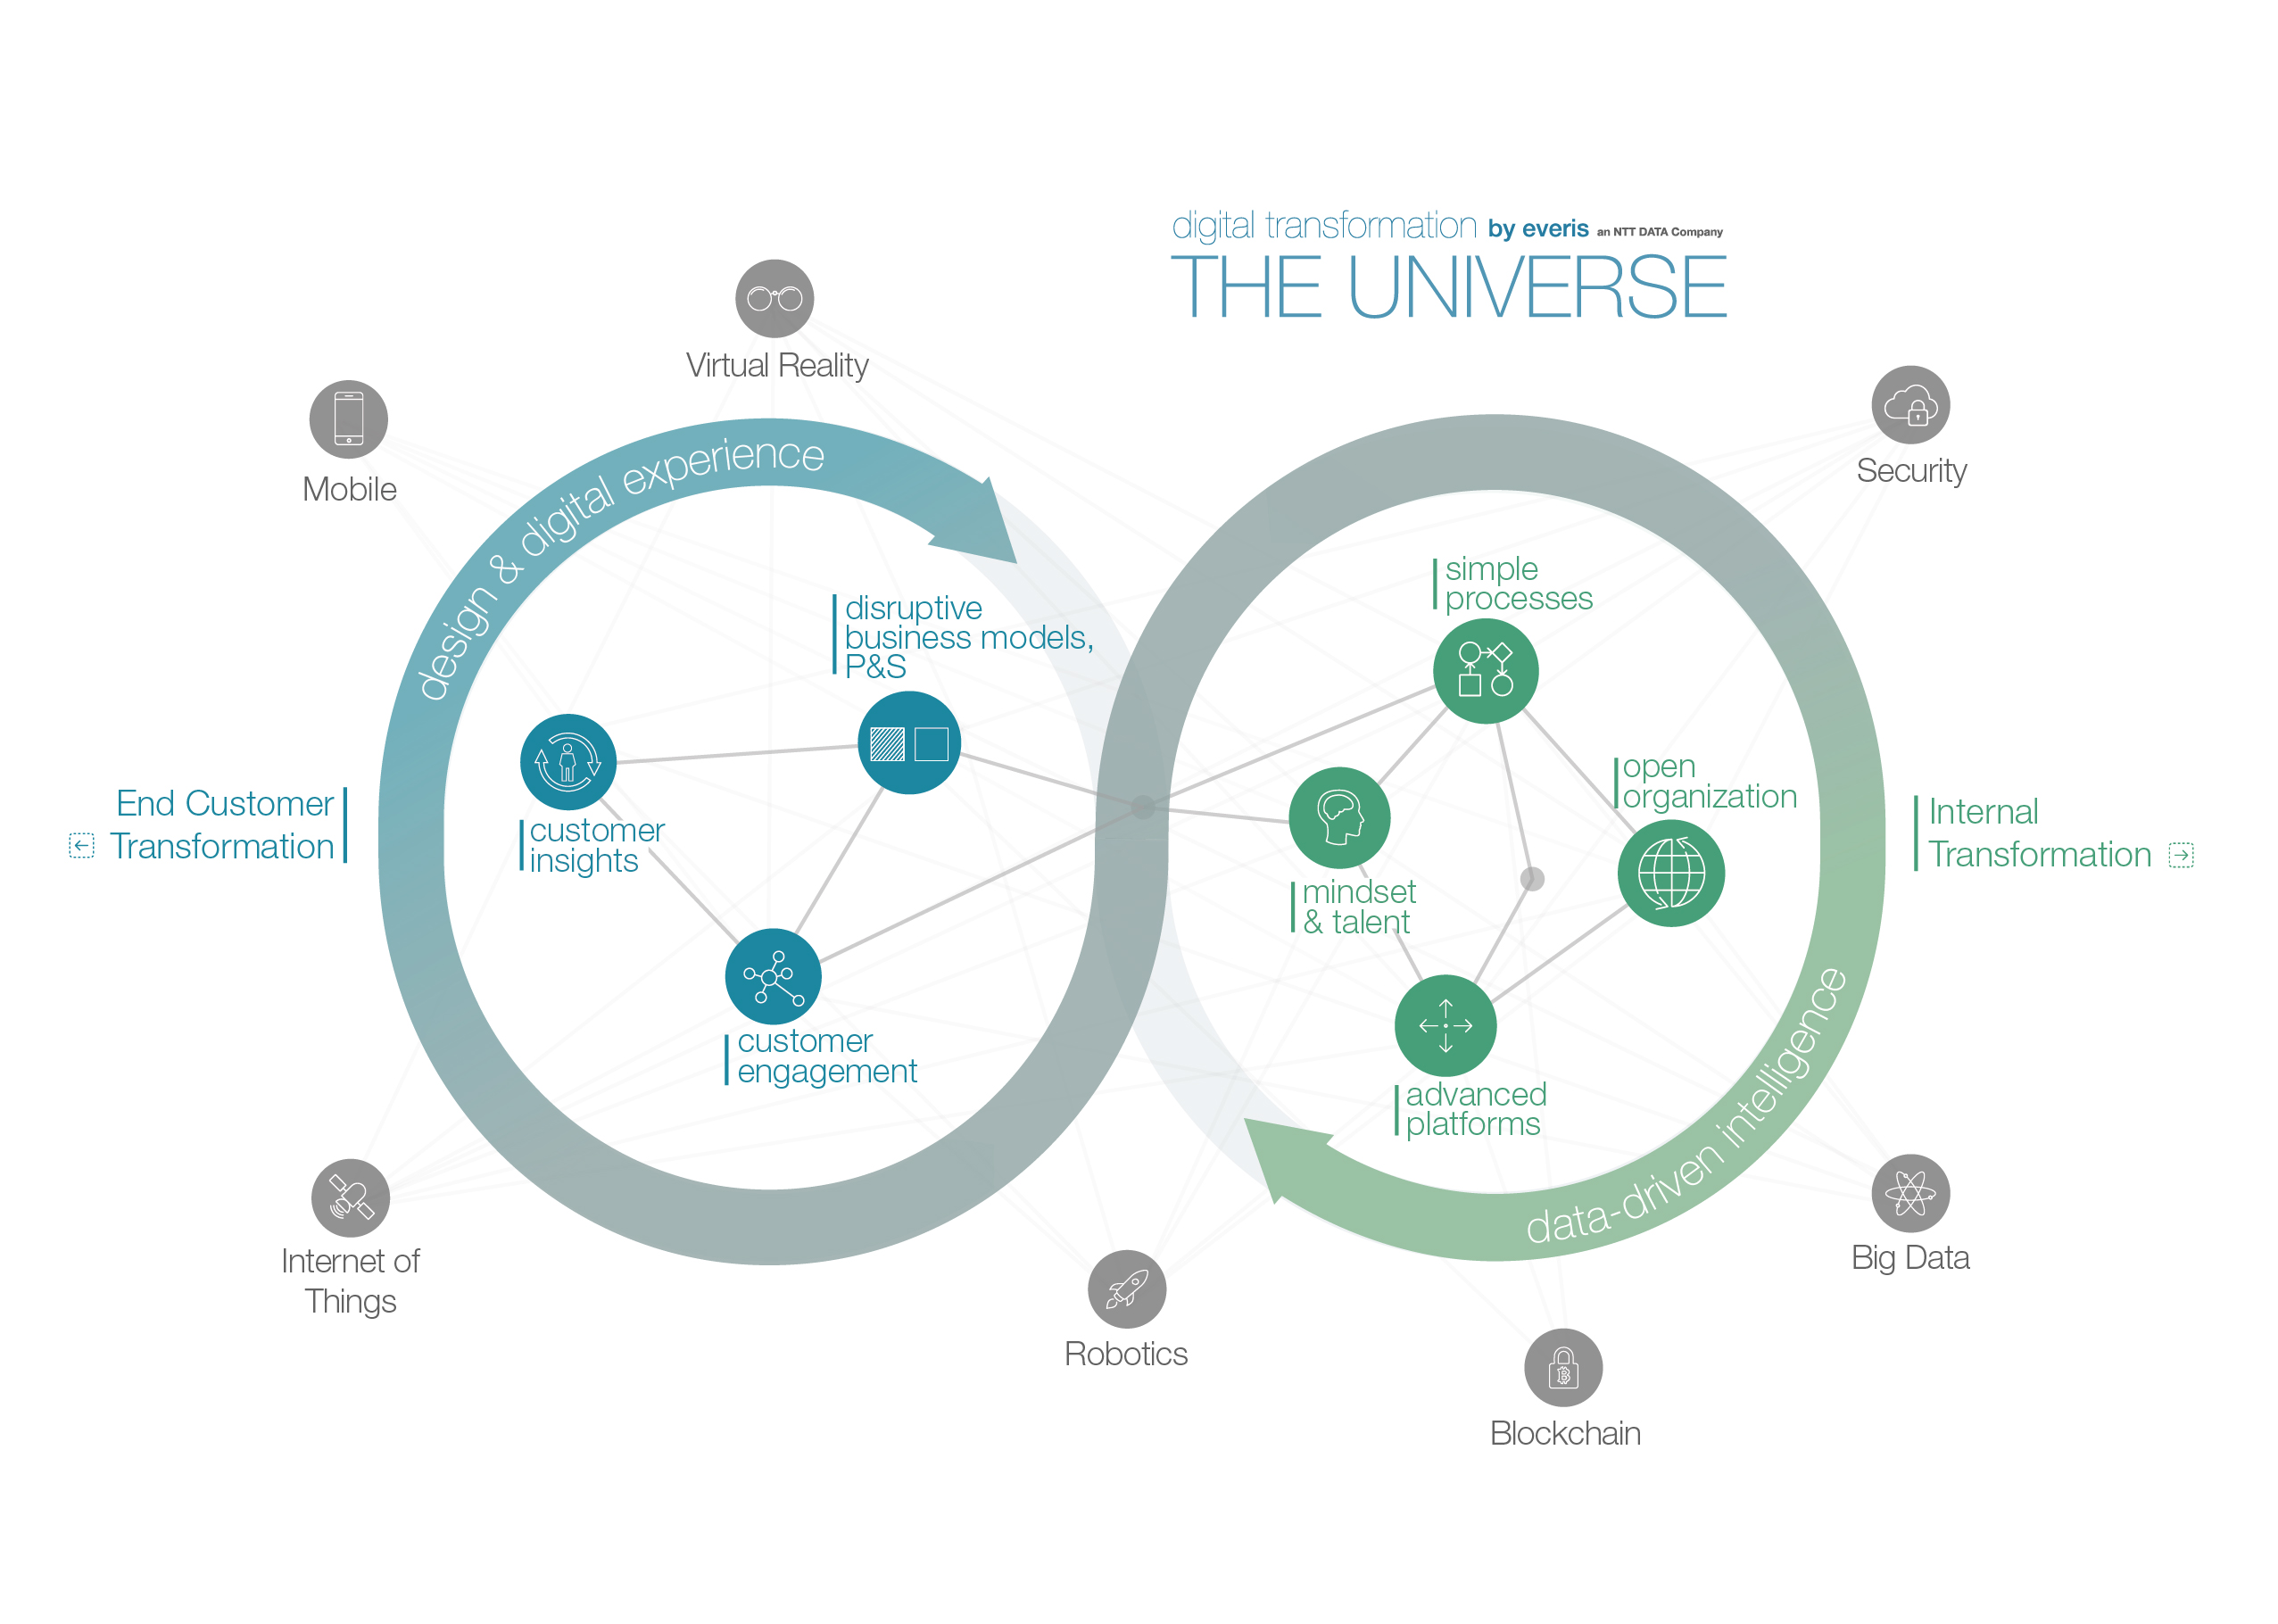 THE UNIVERSE - Digital transformation